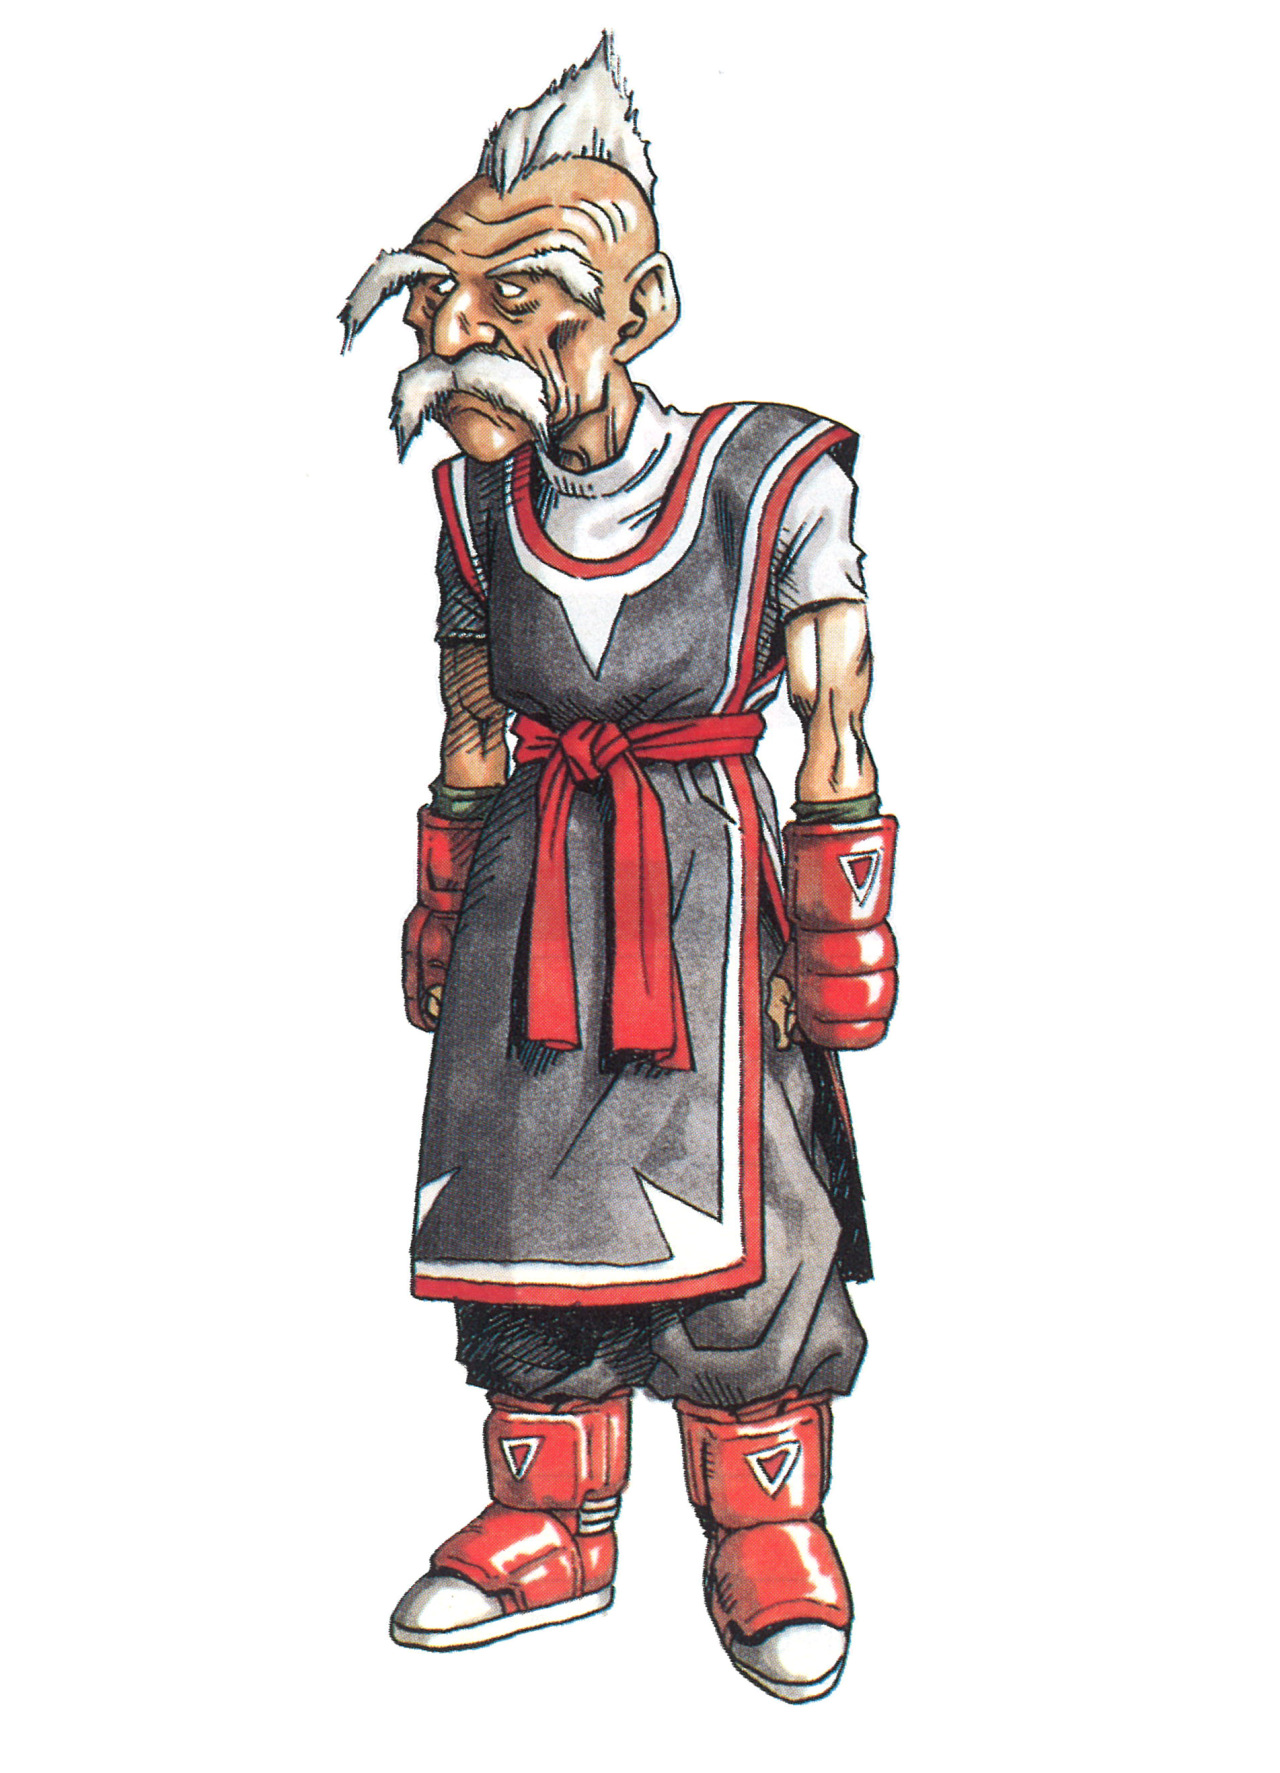 Fei Pusu From Tobal No 1 With The Original Akira Toriyama Artwork And 3d Face Follow Thevideogameartarchive On Tumblr For Aweso Akira Game Art Character Art